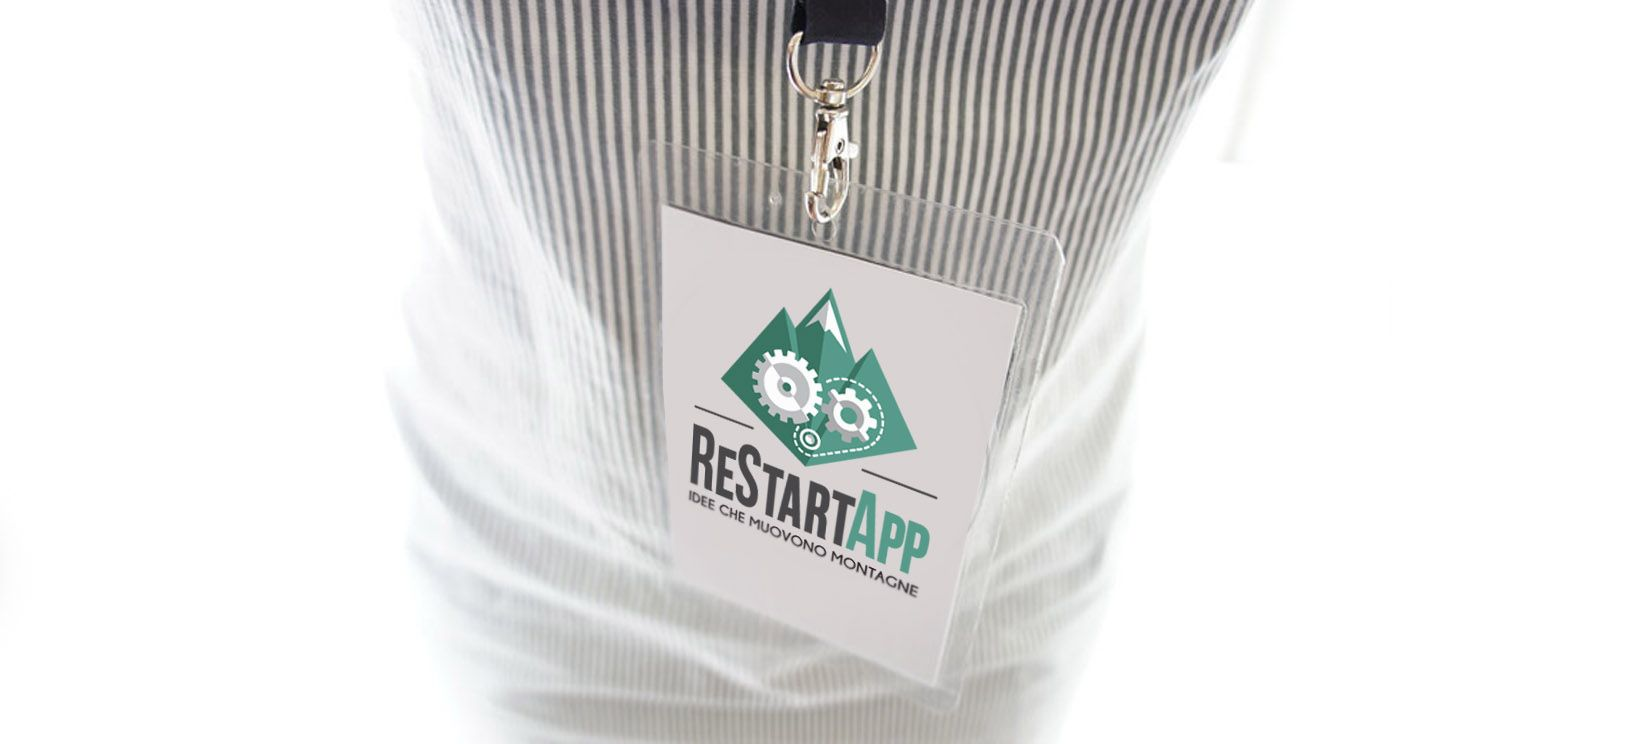 The logo we have created for ReStartApp, a project by Progetto Appennino (Fondazione Edoardo Garrone)